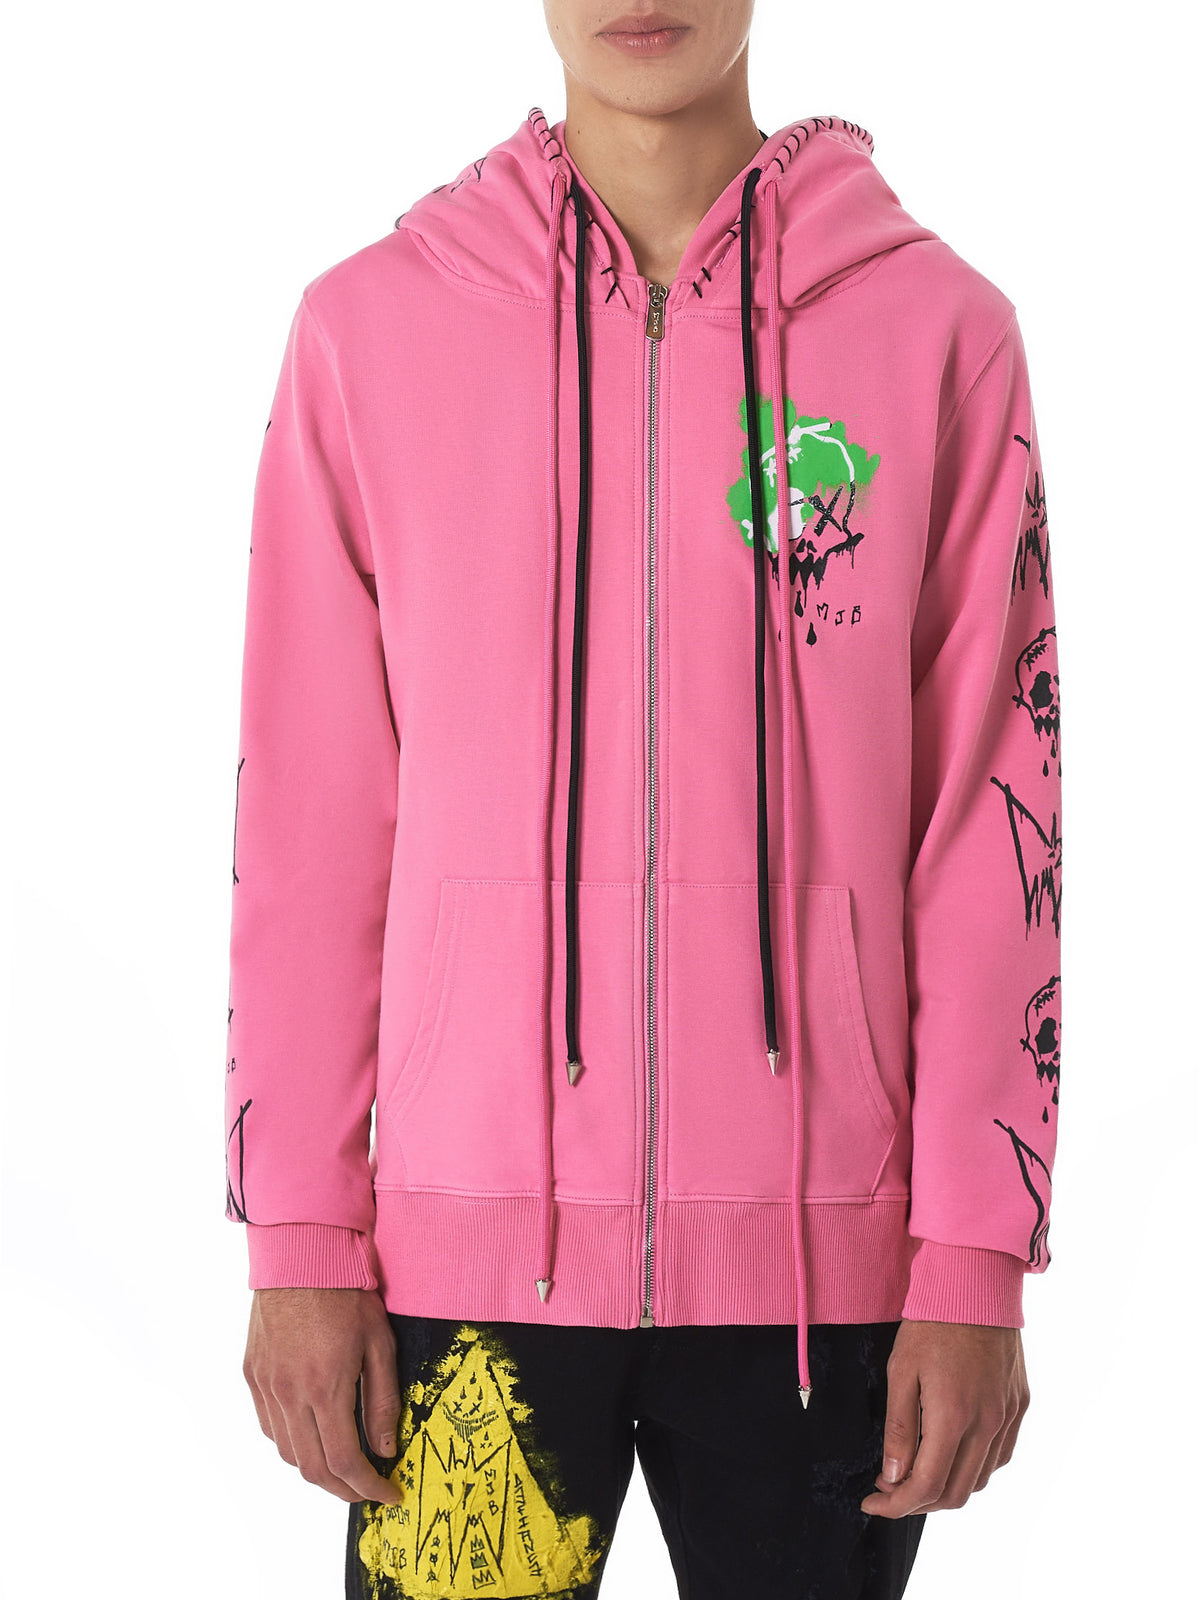 MJB (Marc Jacques Burton) Pink Hoodie - Hlorenzo Front